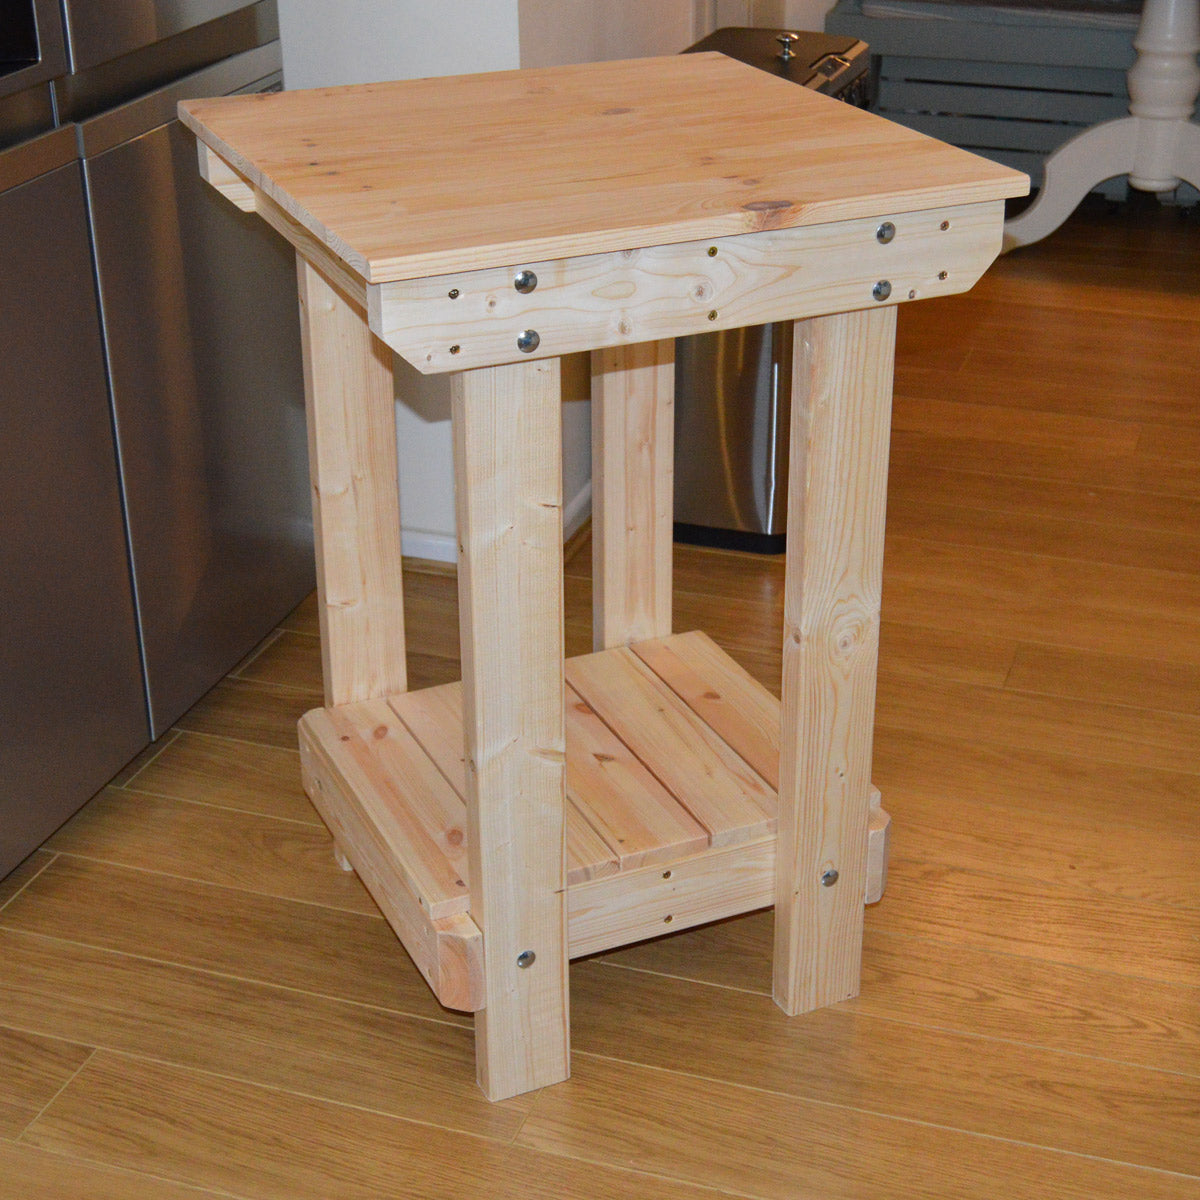 wooden workbench for sheds simply bolt the legs on. Black Bedroom Furniture Sets. Home Design Ideas